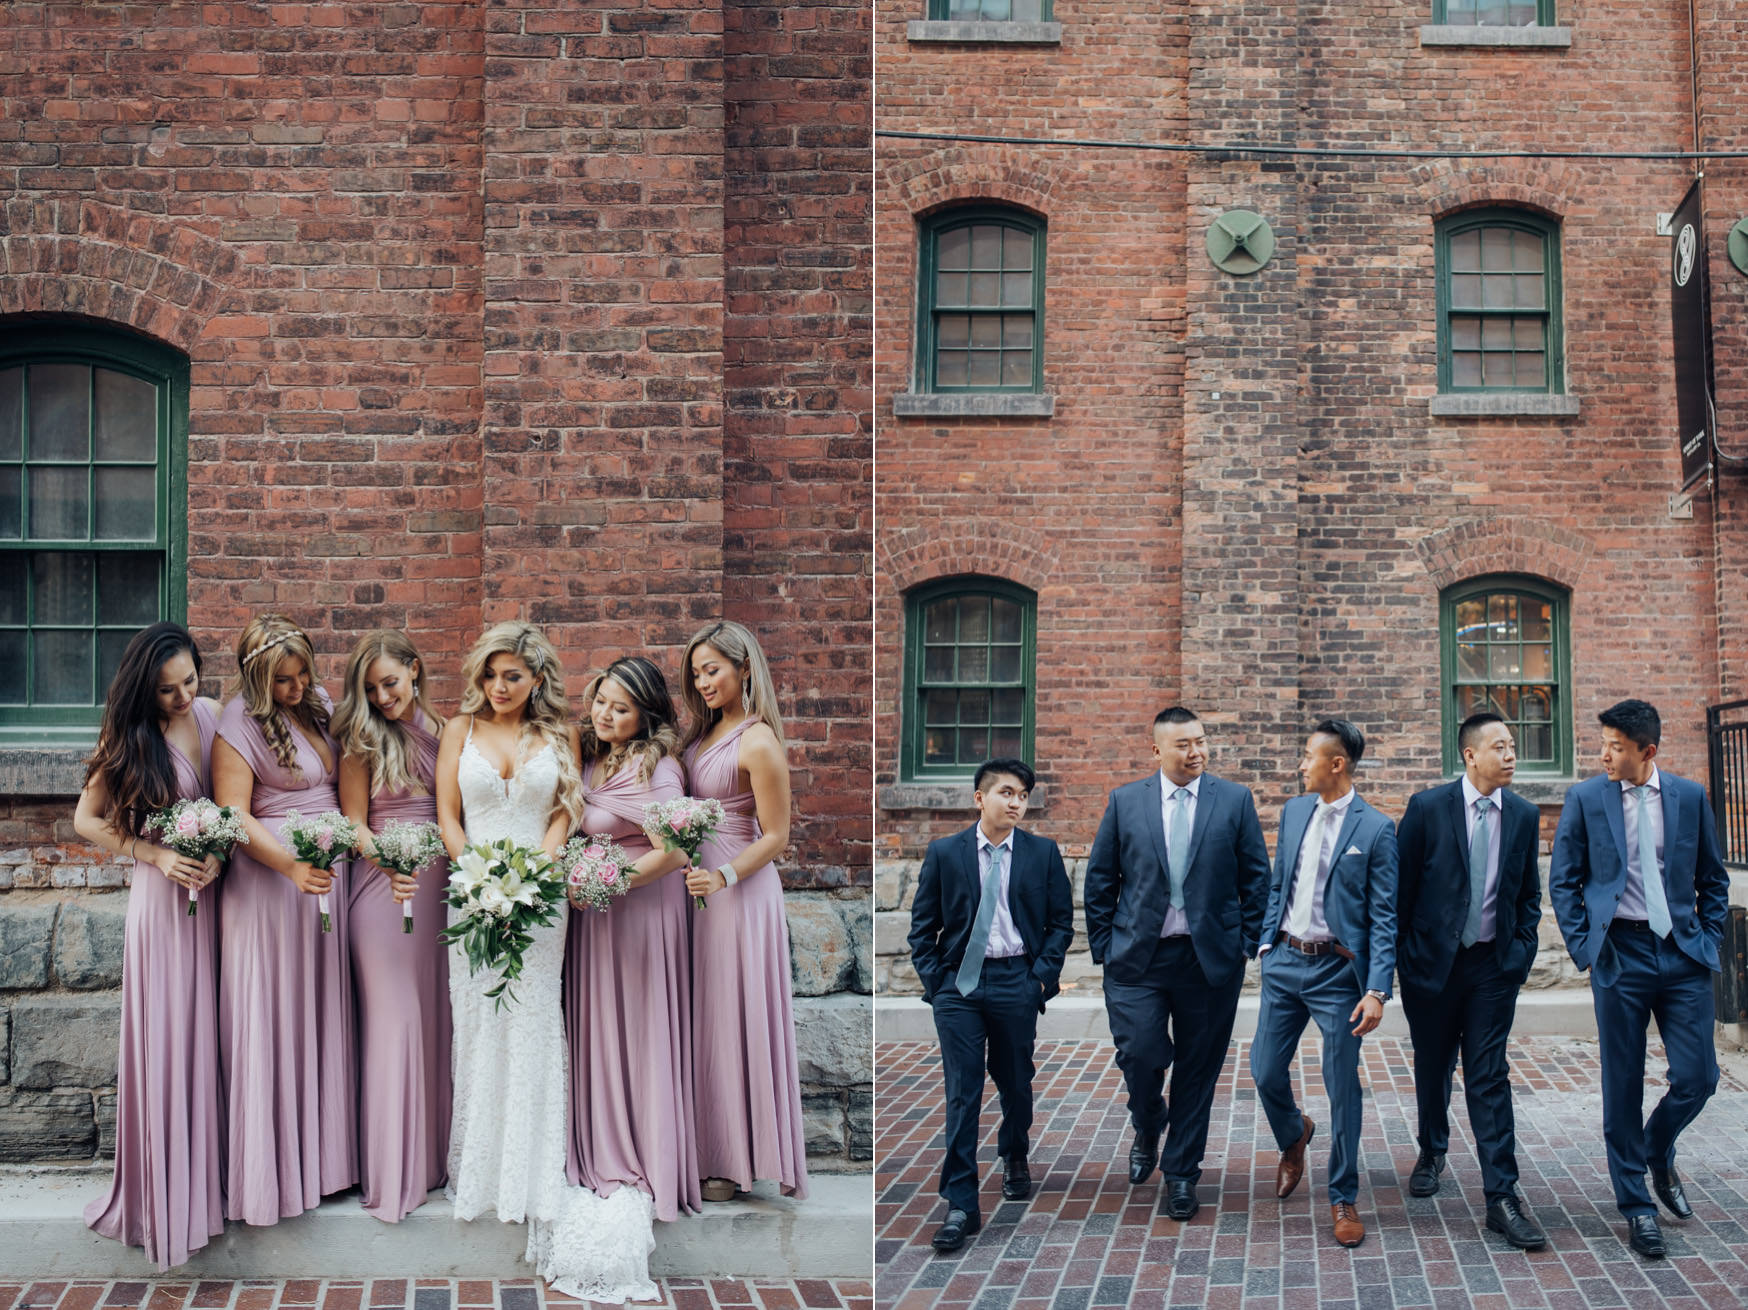 Bridesmaids and groomsmen at the distillery district wedding